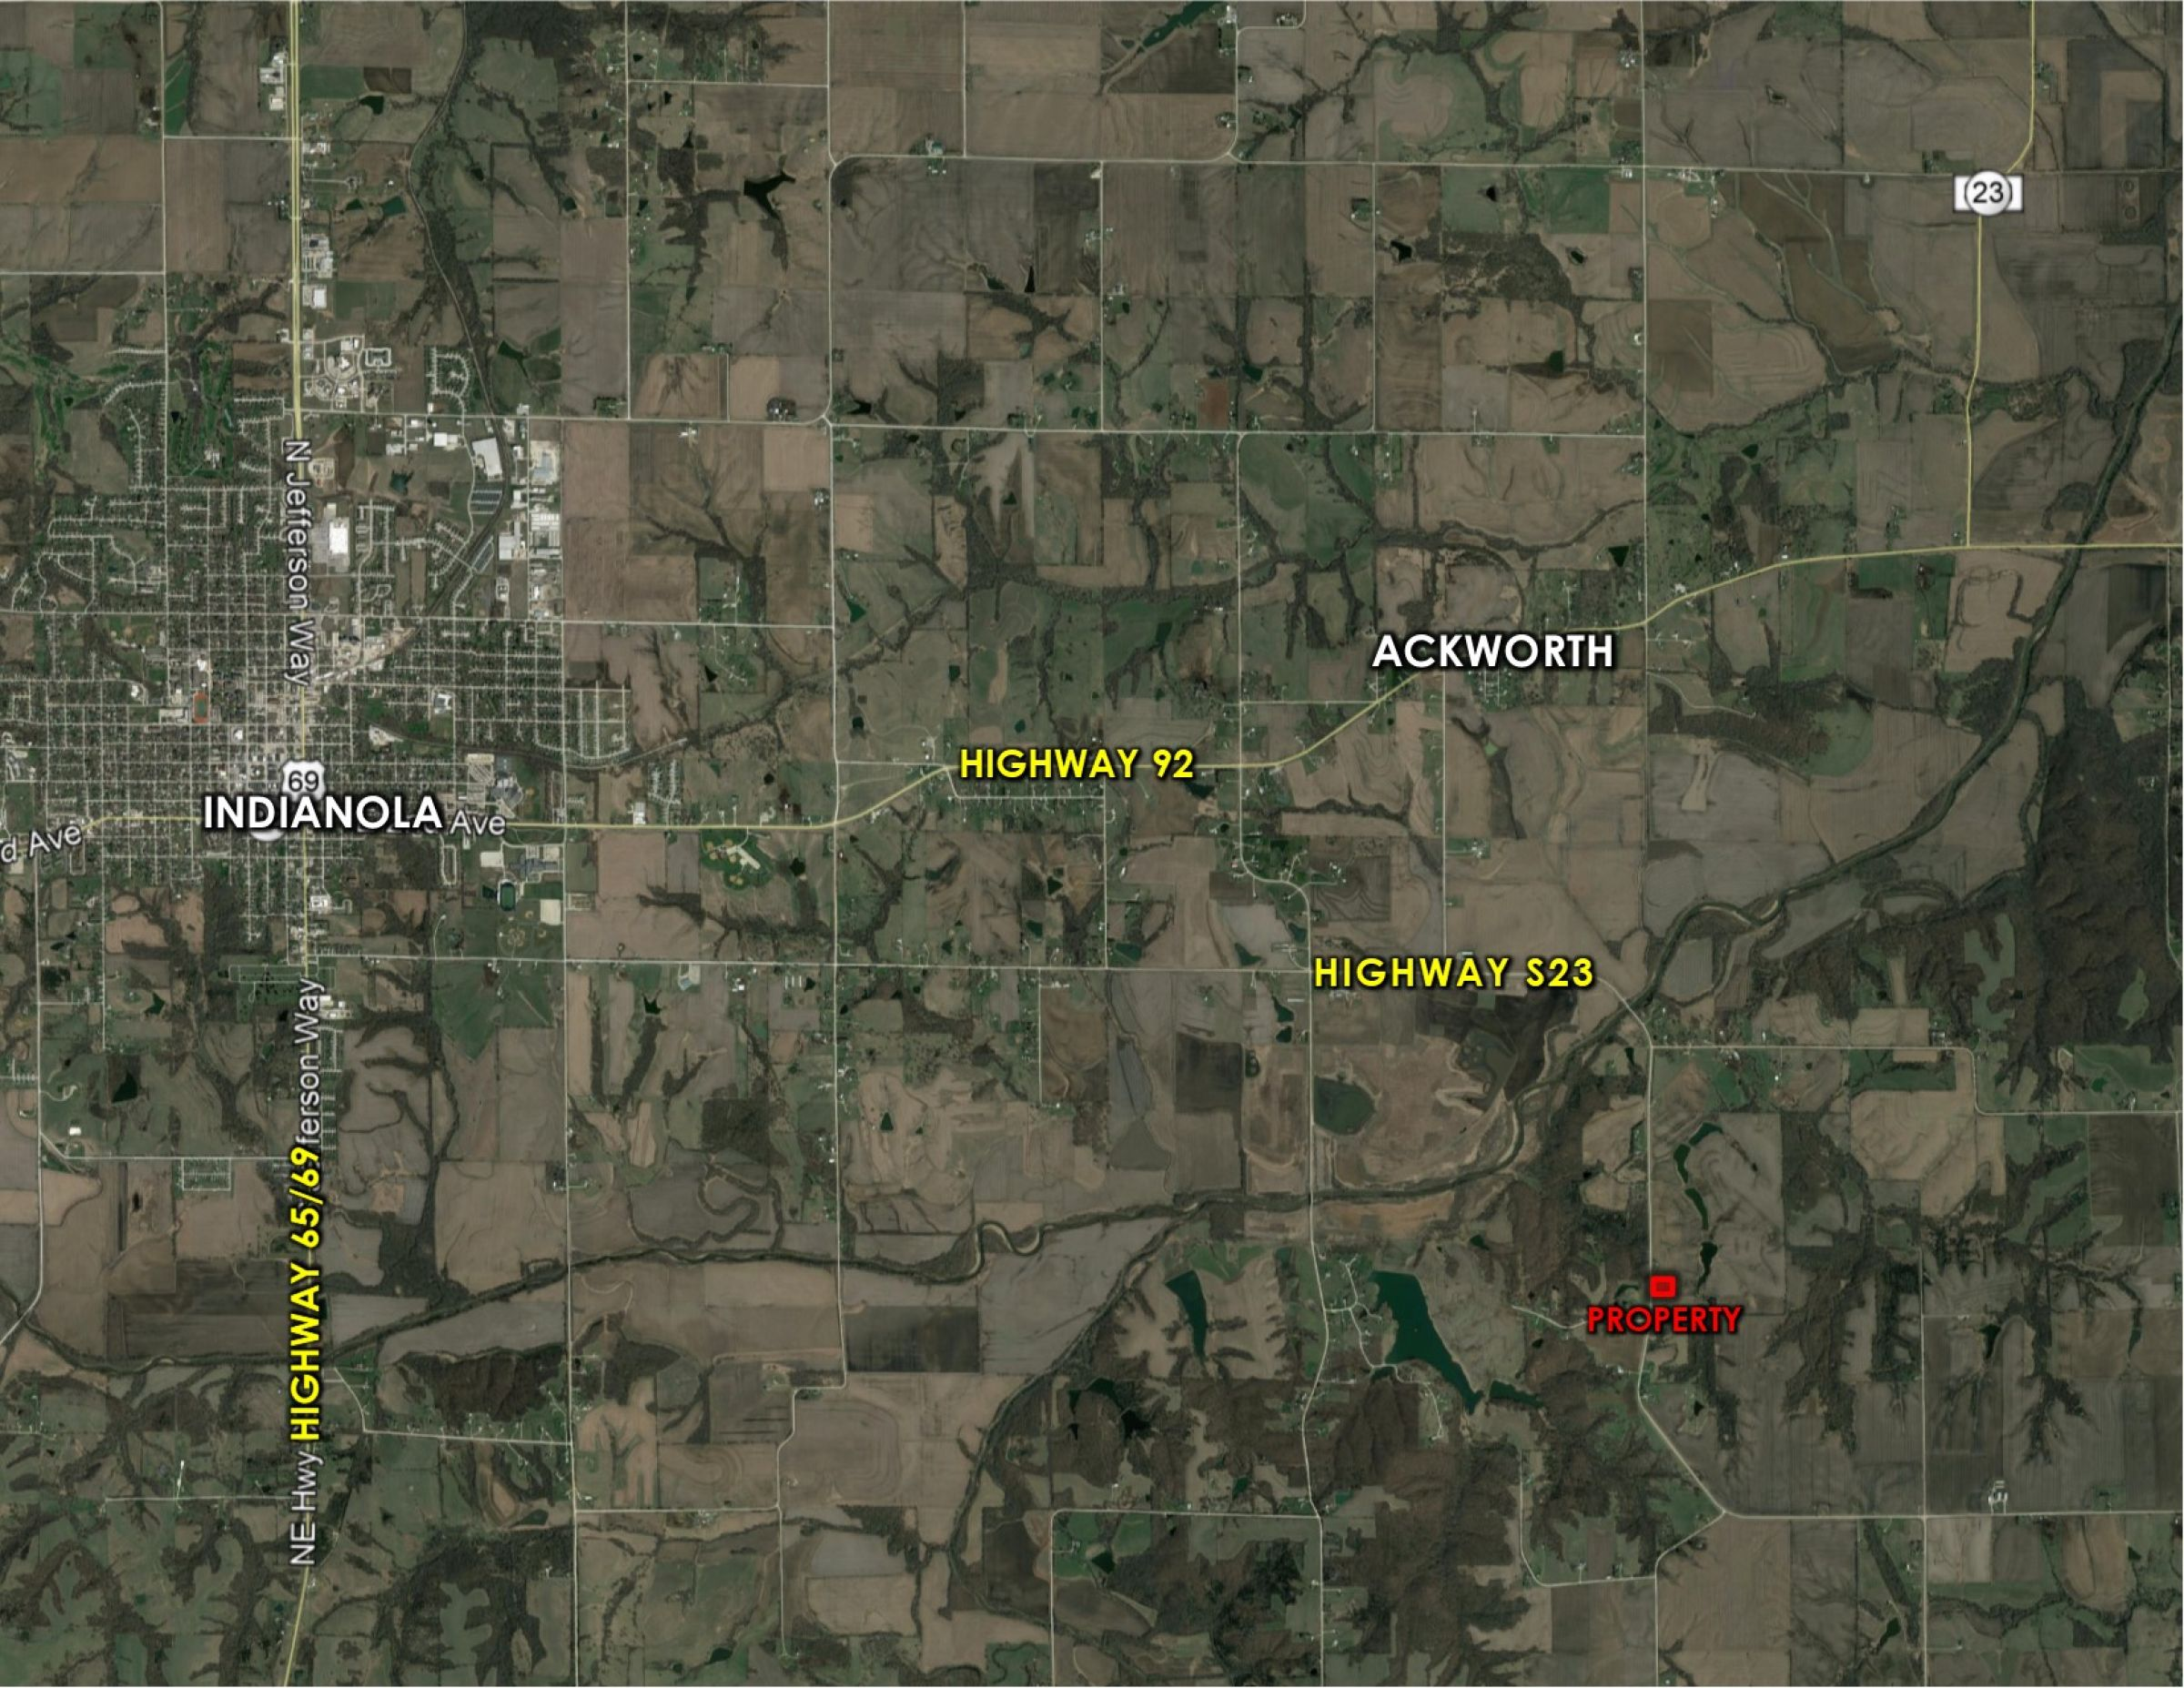 Peoples Company Land for Sale - Warren County, Iowa - #14509-000-s23-Highway-milo-50125